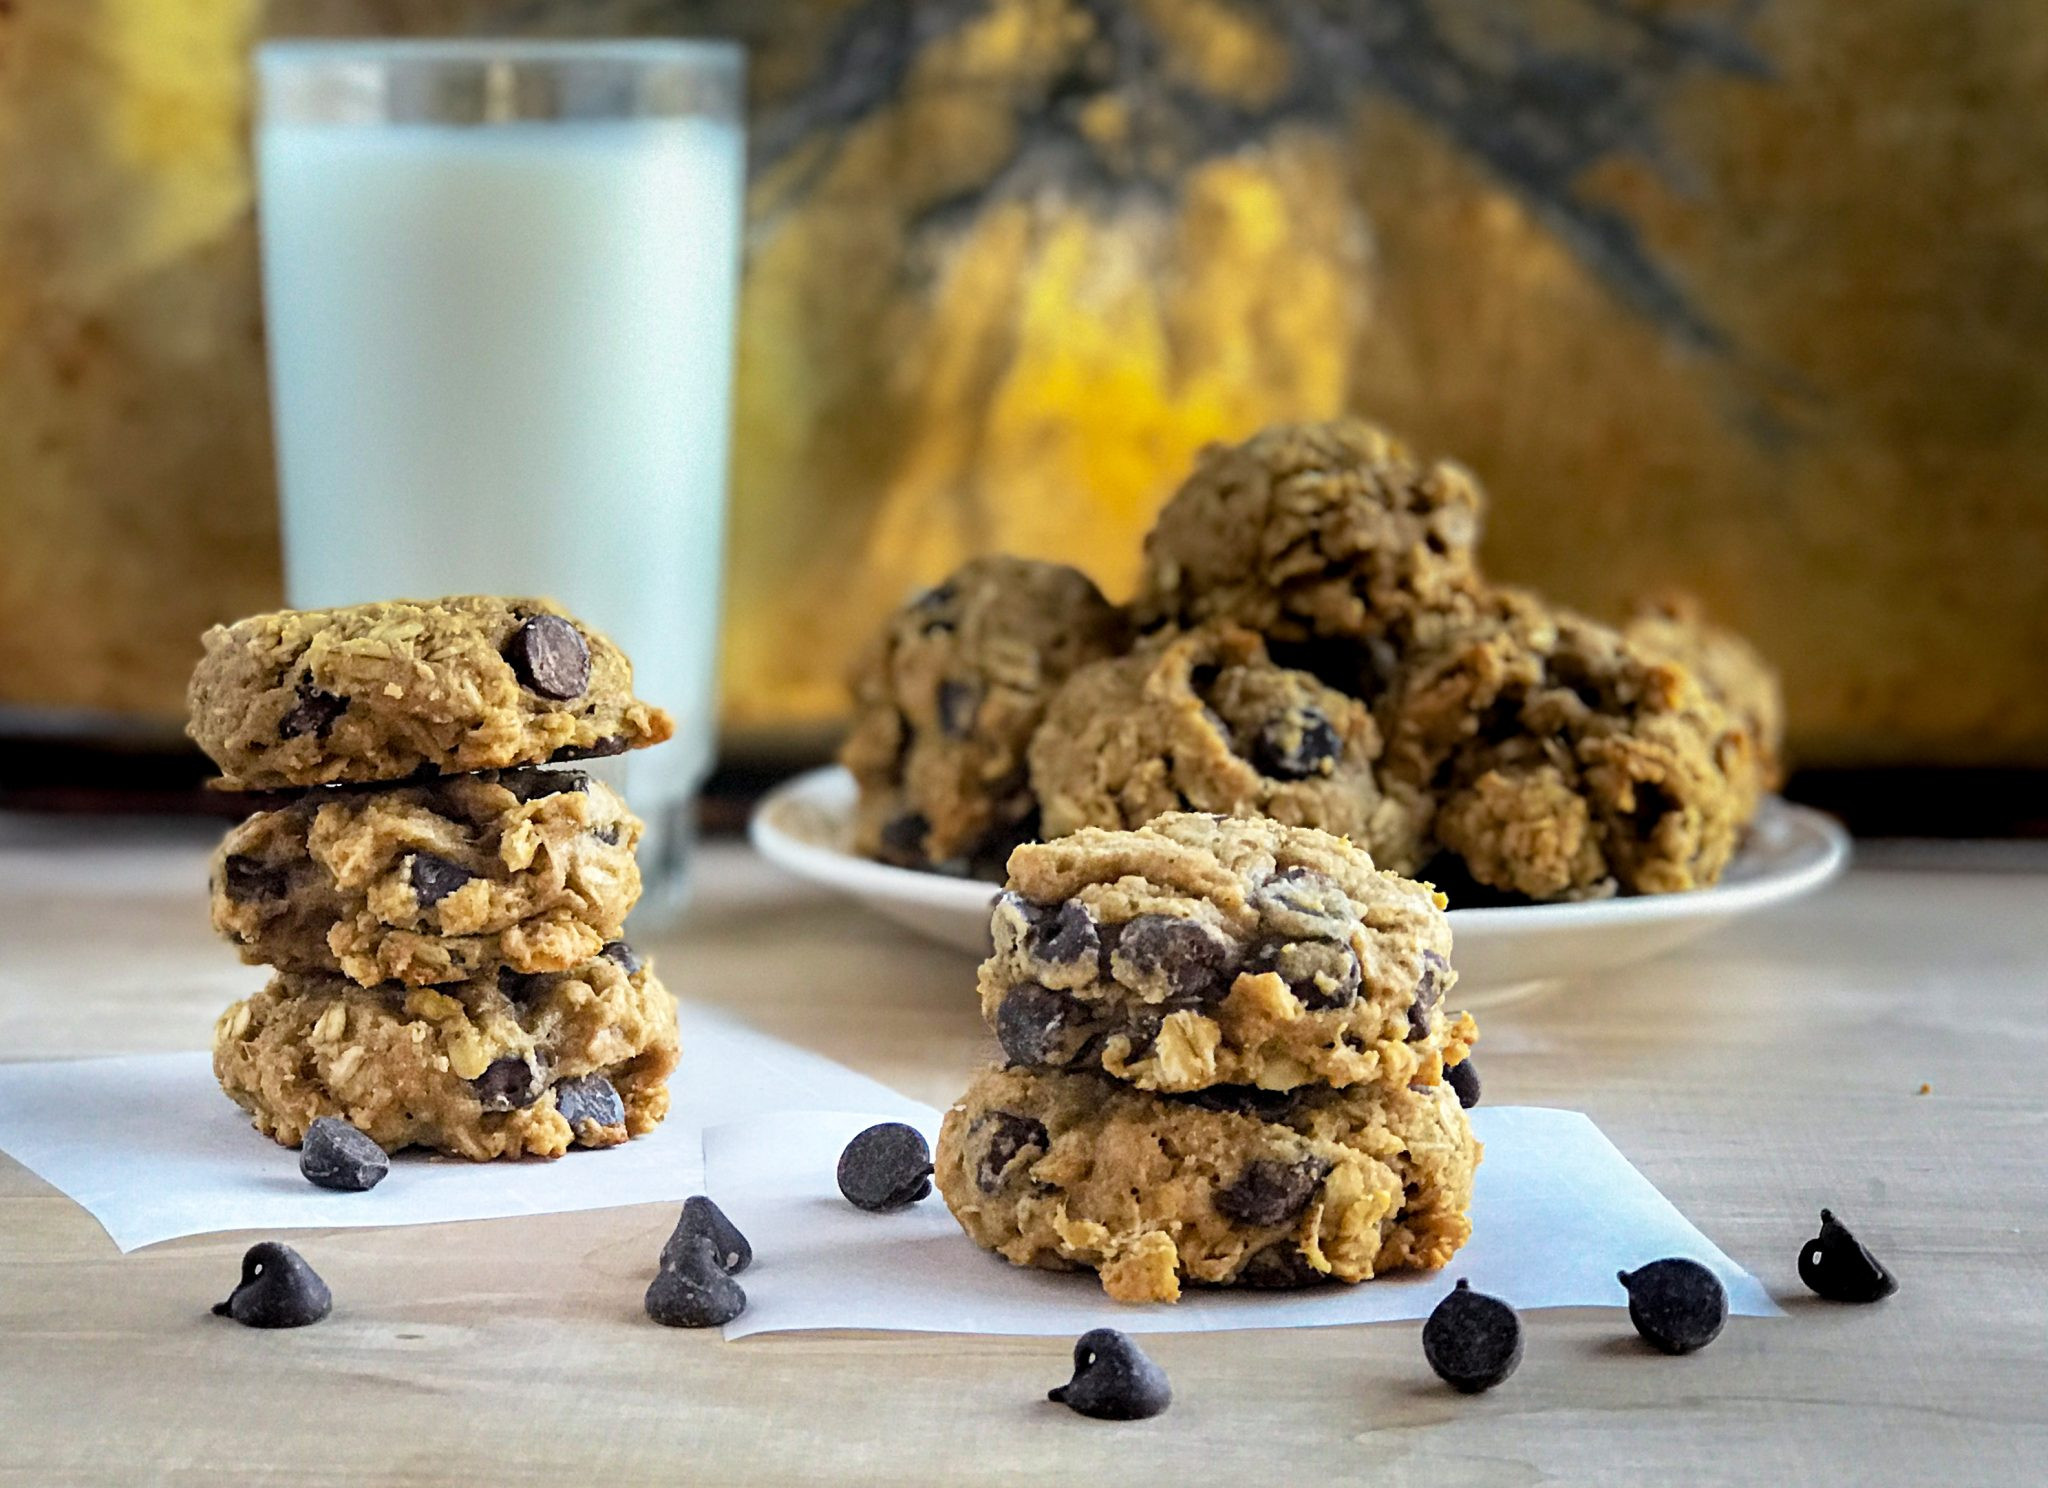 Healthy Peanut Butter Chocolate Chip Cookies  Healthy Peanut Butter Chocolate Chip Cookies 31 Daily